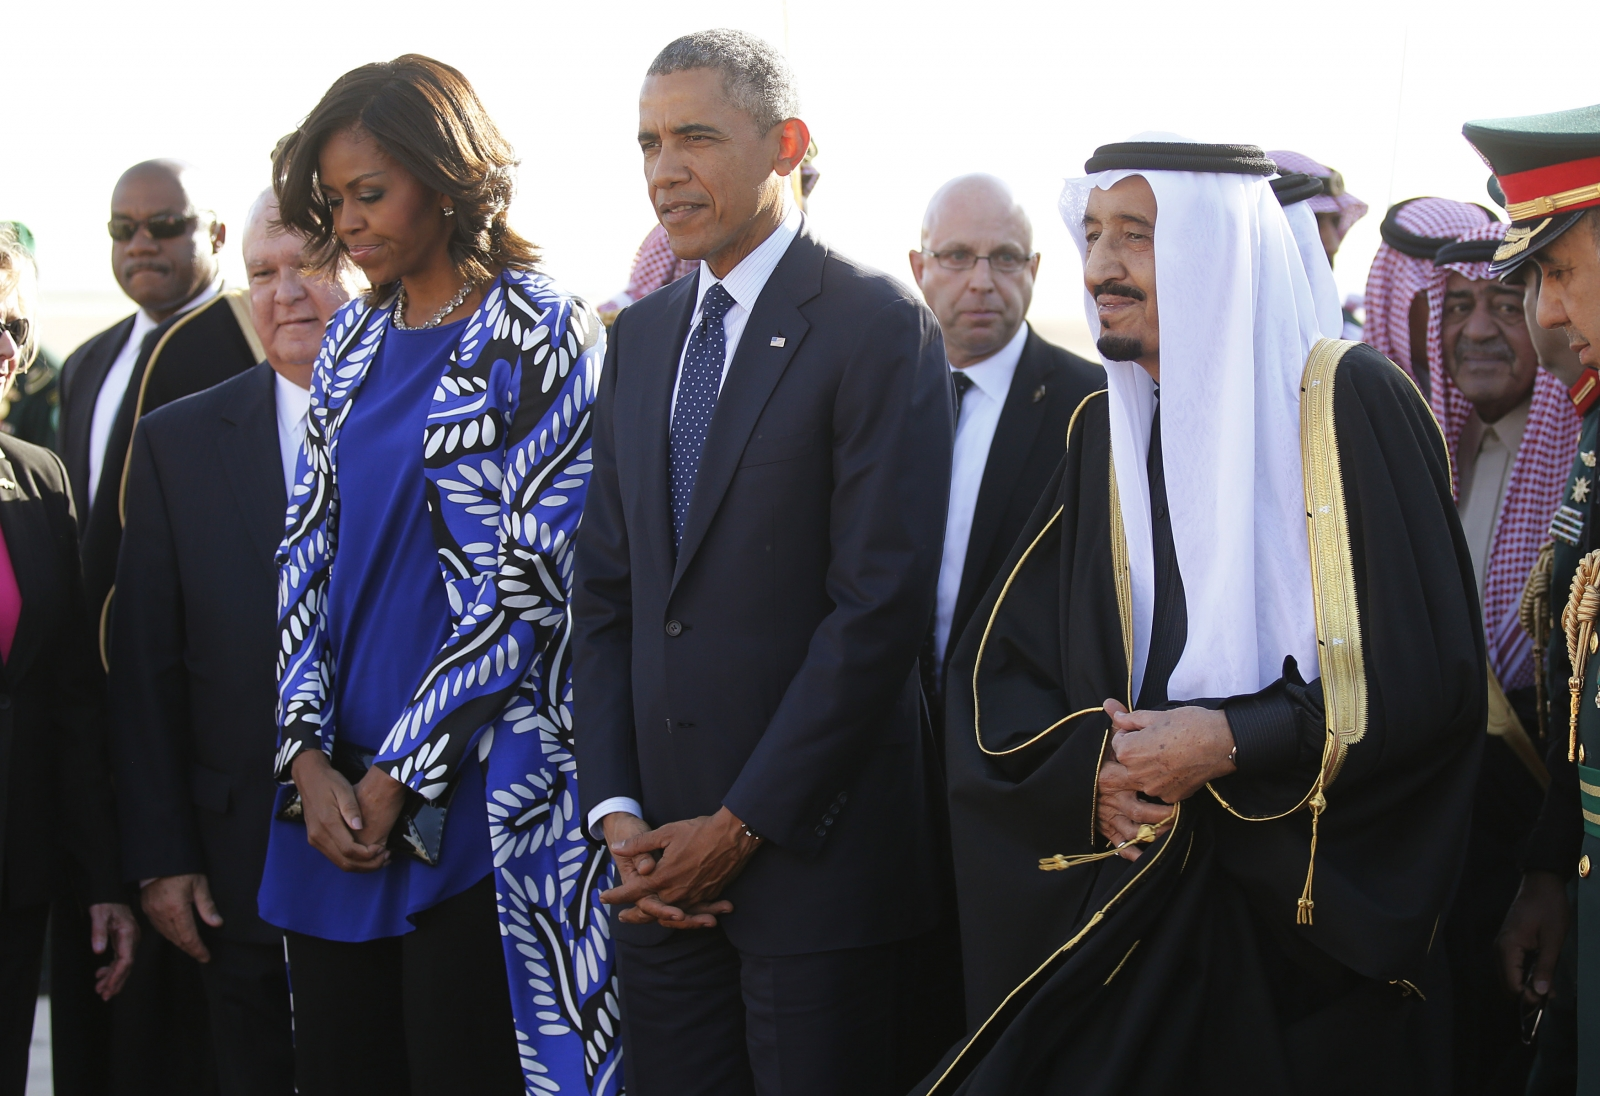 Michelle Obama attracts criticism for not wearing head scarf in Saudi Arabia